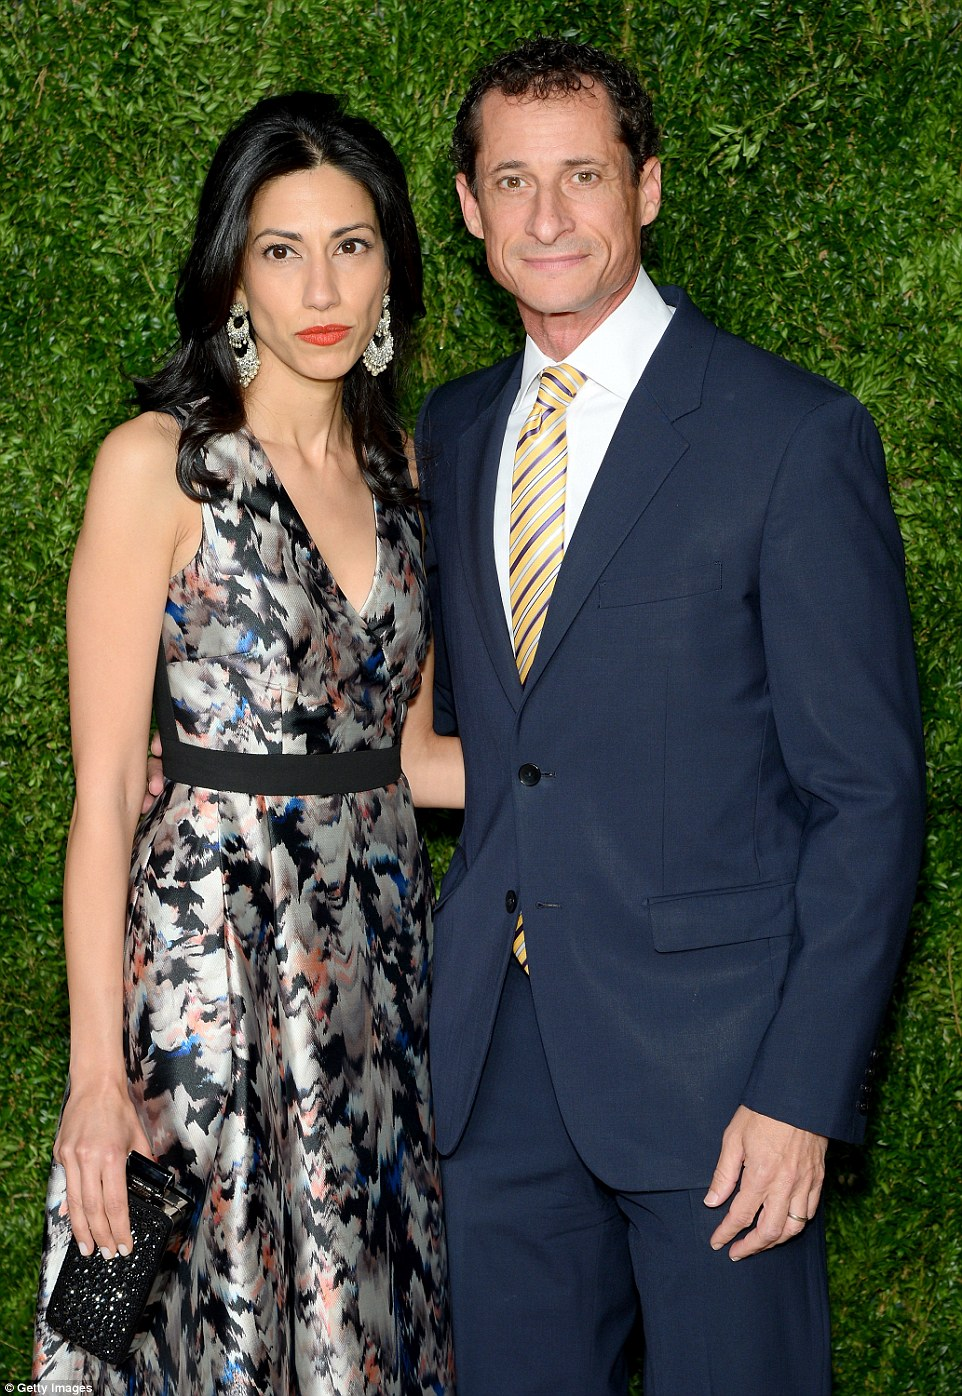 The investigation was reopened on October 28 - sparked by a DailyMail.com story that revealed Anthony Weiner (pictured with his wife, Huma Abedin - who is Hillary Clinton's top aide) was sending sexually explicit messages to a 15-year-old girl